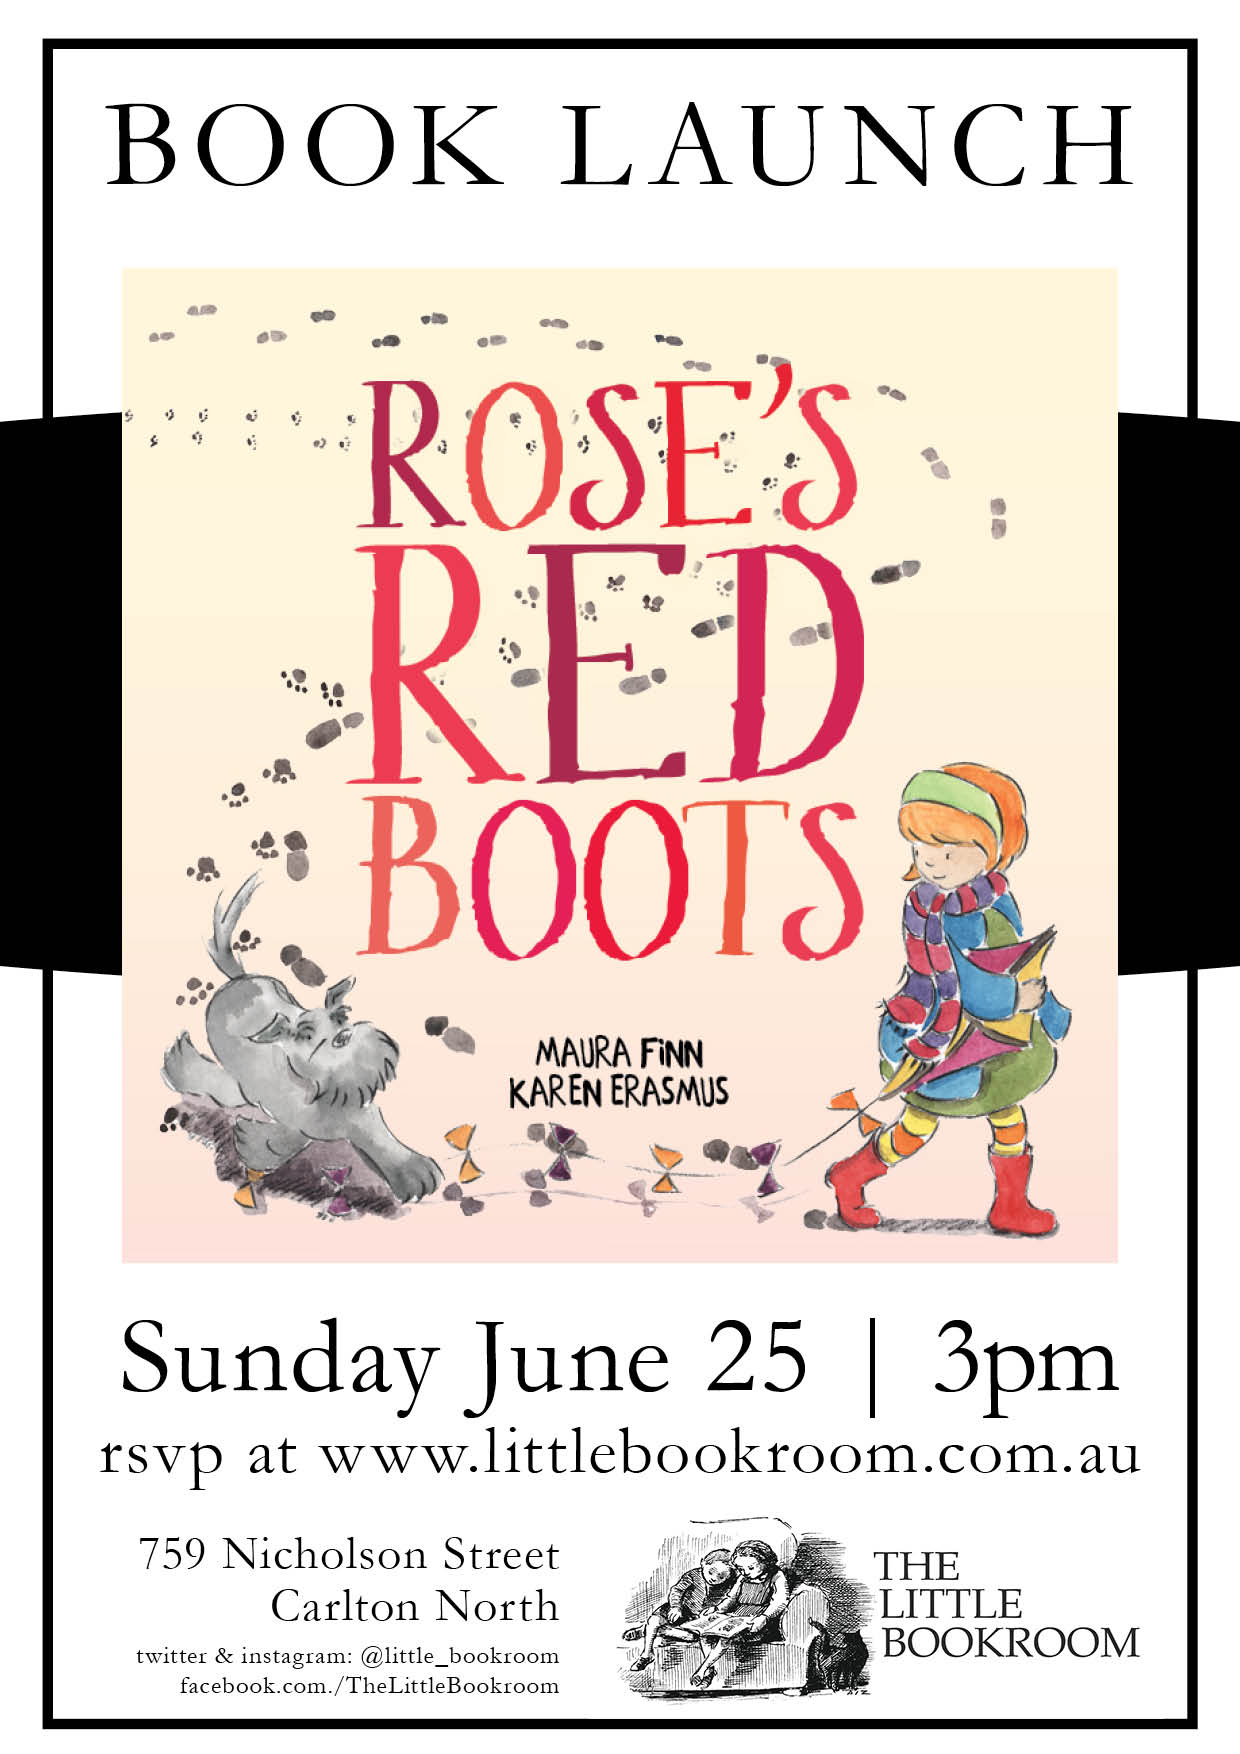 Book Launch: Rose's Red Shoes by Maura Finn & Karen Erasmus